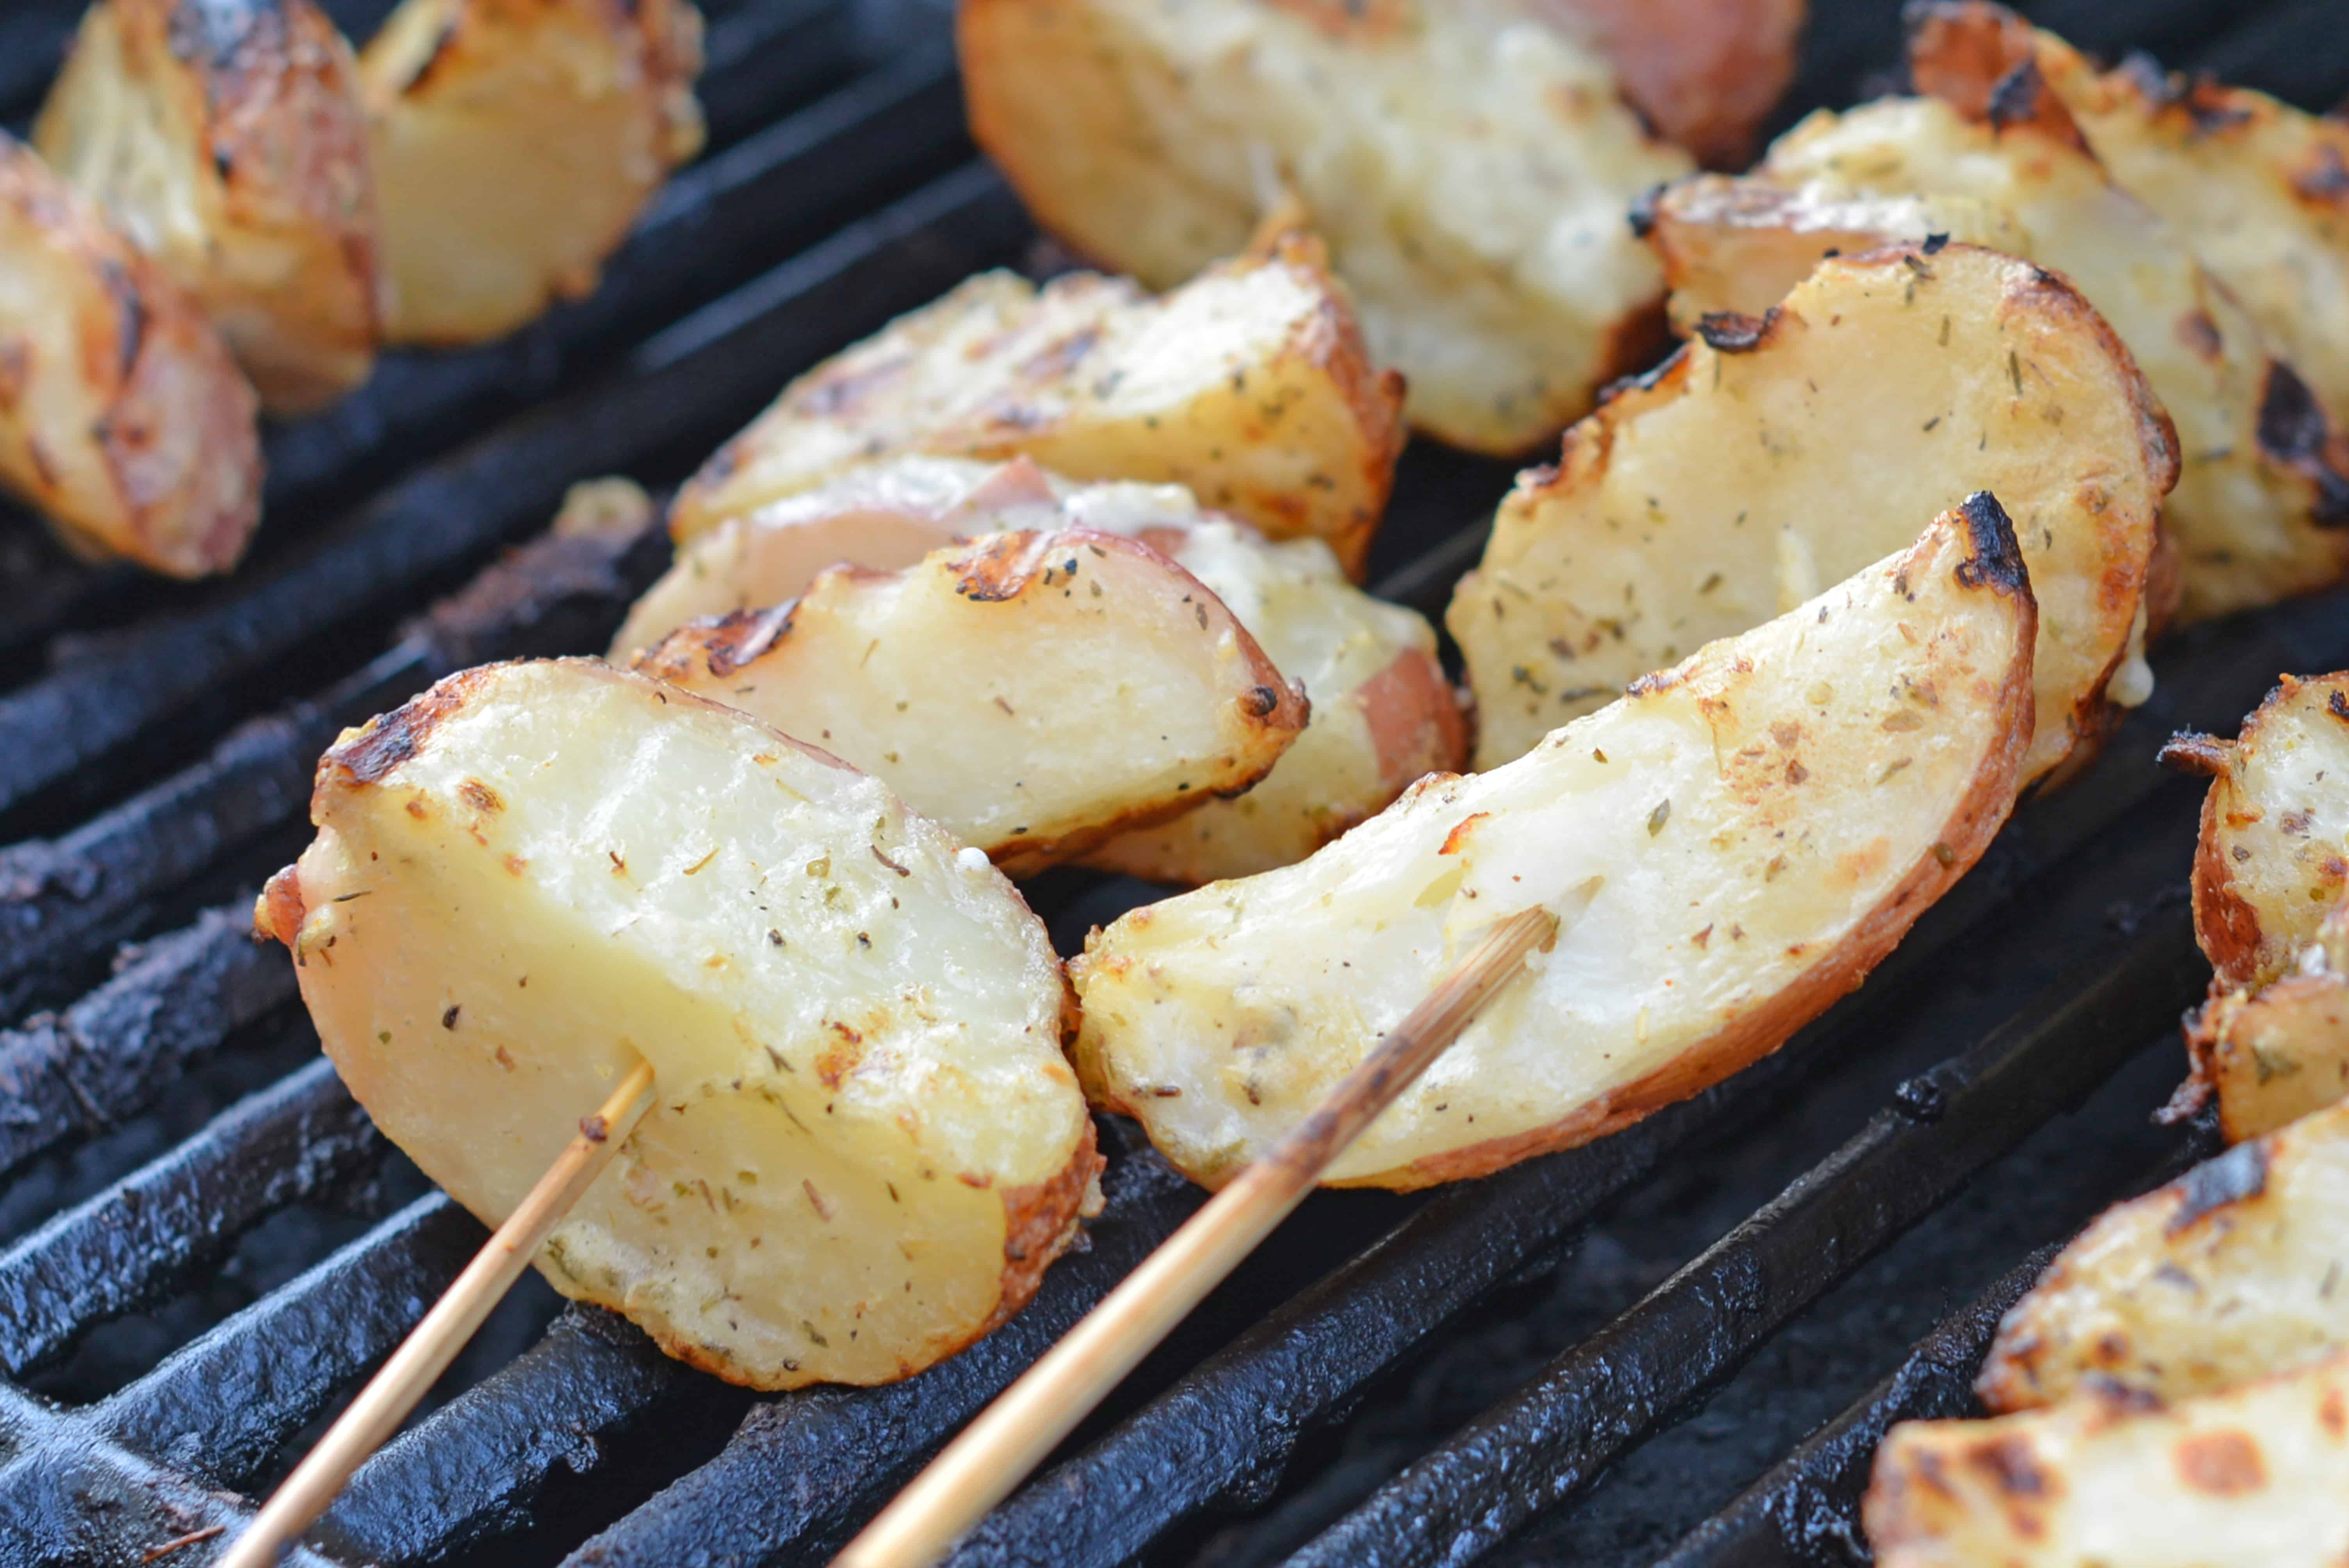 Potatoes on the grill uses miracle whip (I called them Miracle Whip Potatoes growing up) and keeps those spuds nice and moist with loads of tangy flavor.